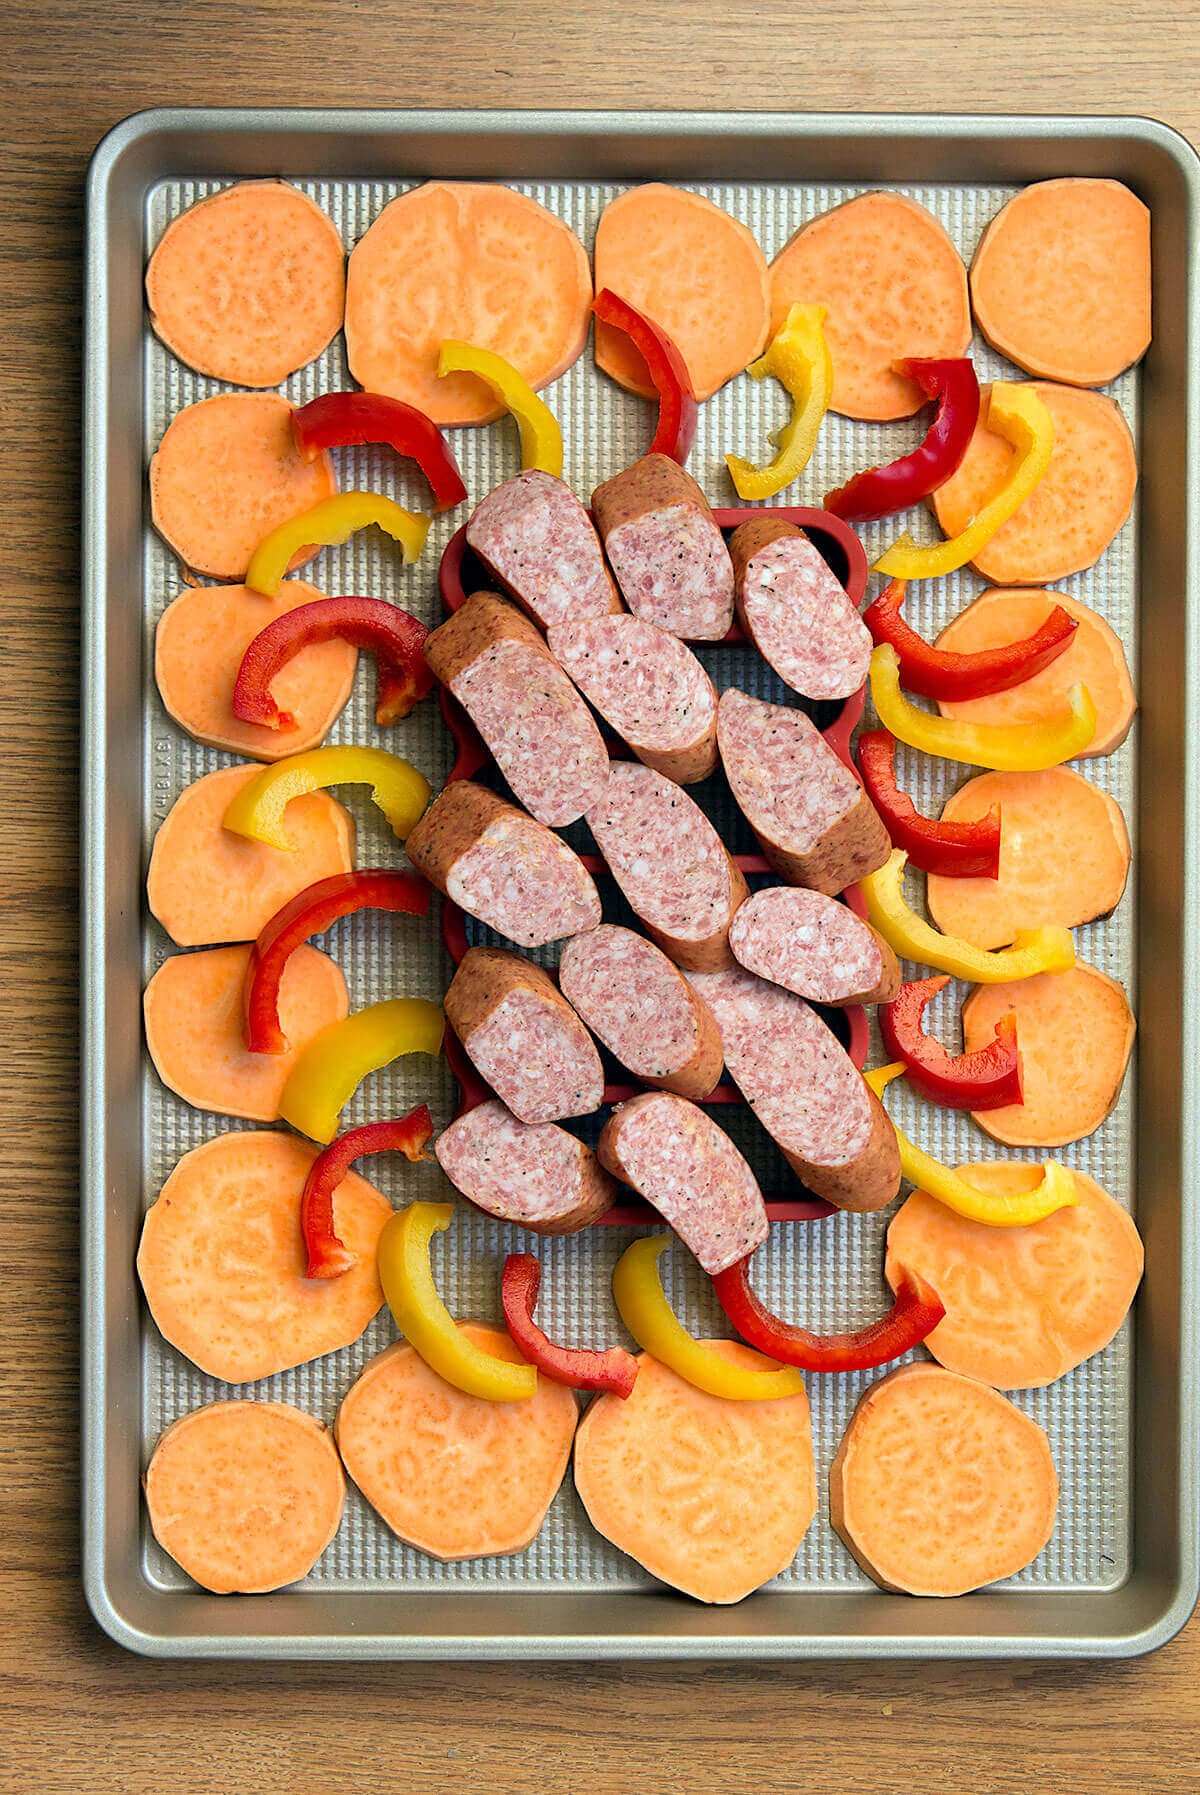 This easy sausage sheet pan dinner is a delicious and quick weeknight meal! Smoked sausage, sweet potatoes, and bell peppers are lightly seasoned, then roasted for 20 minutes in this one pan dinner recipe.